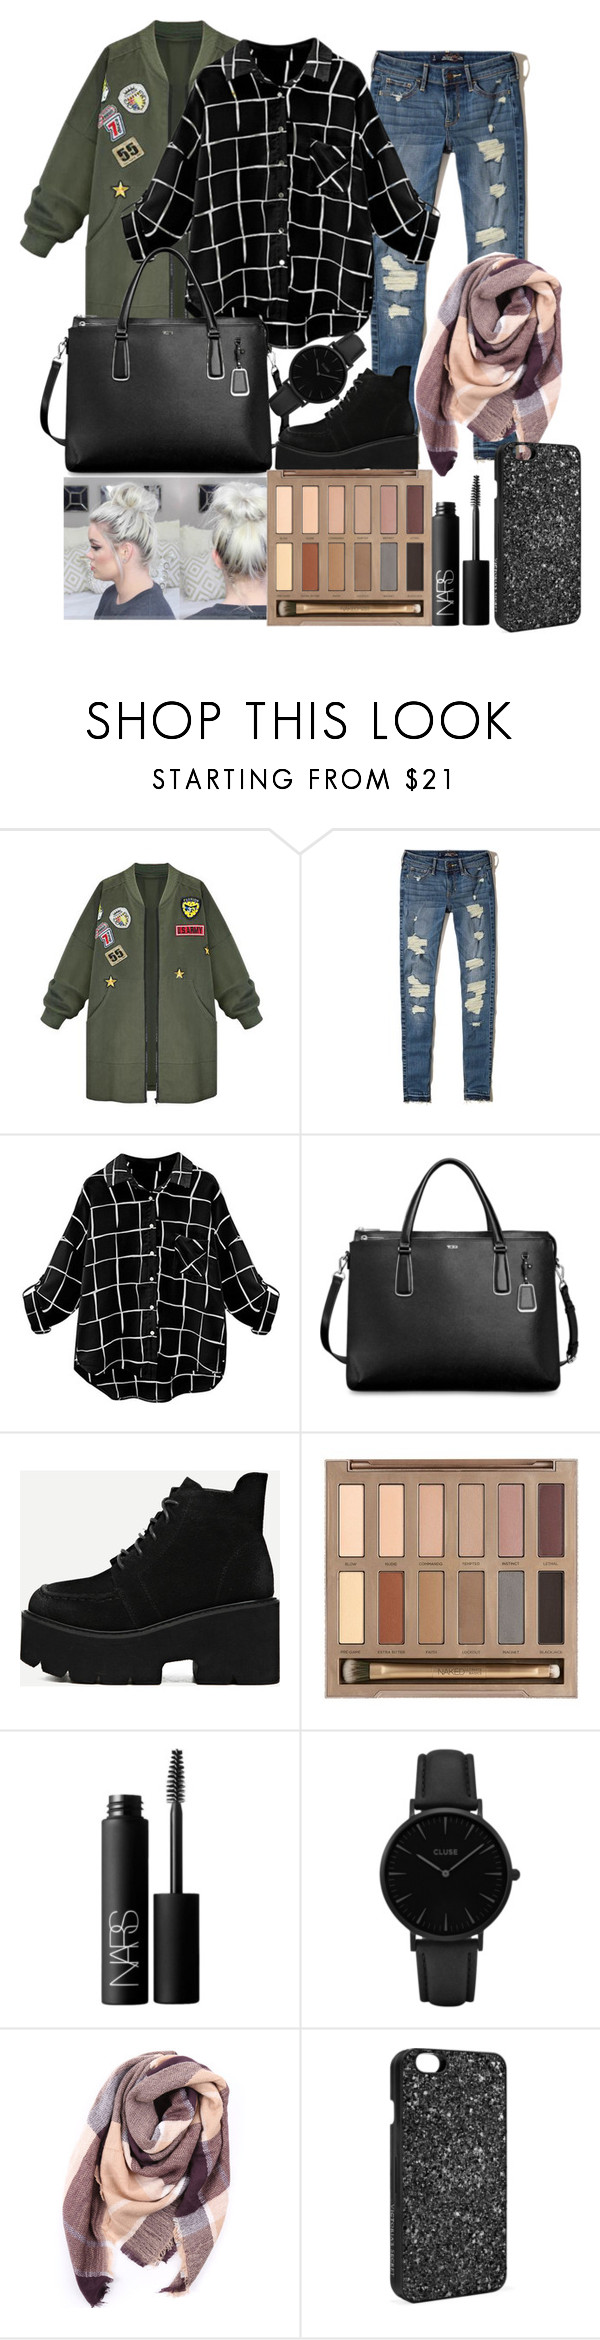 """""""Yaass"""" by kostenishe ❤ liked on Polyvore featuring WithChic, Hollister Co., Tumi, Urban Decay, NARS Cosmetics, CLUSE, Everest and Victoria's Secret"""